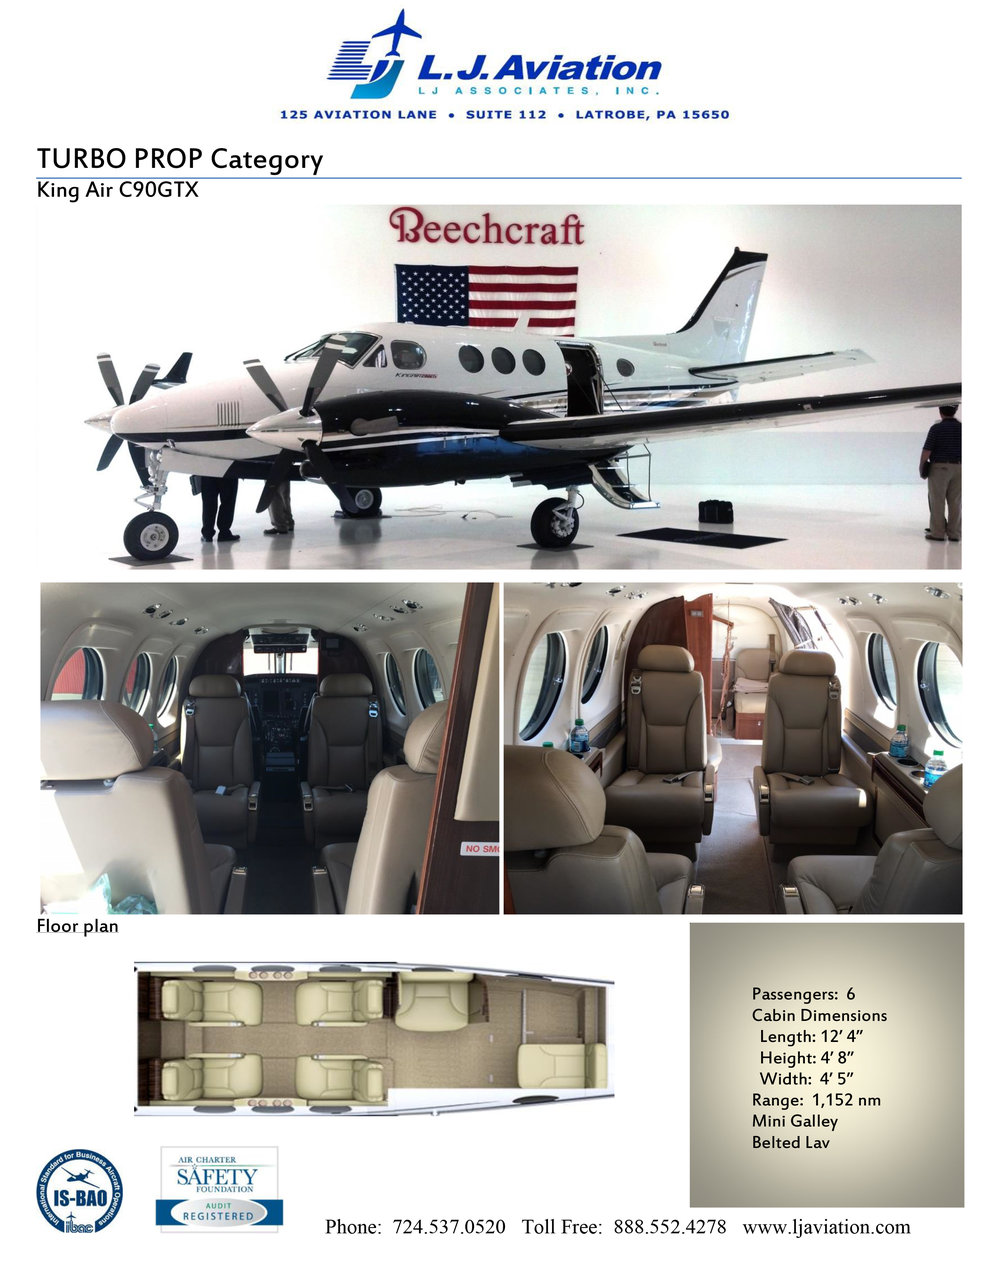 king_air_turbo_prop_spec.jpg